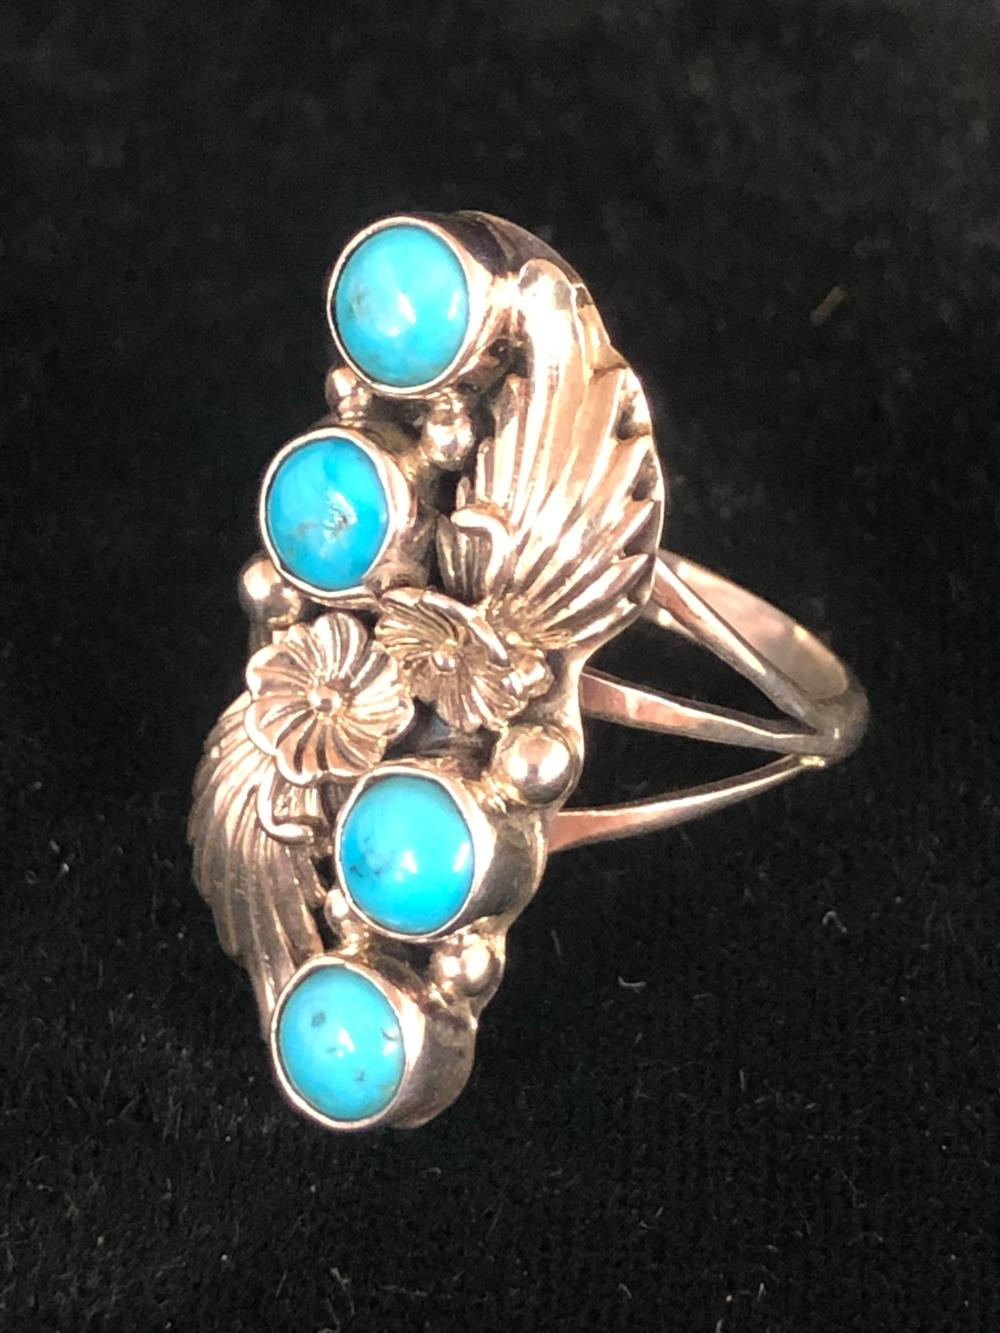 Turquoise stone & leaf design sterling silver ring